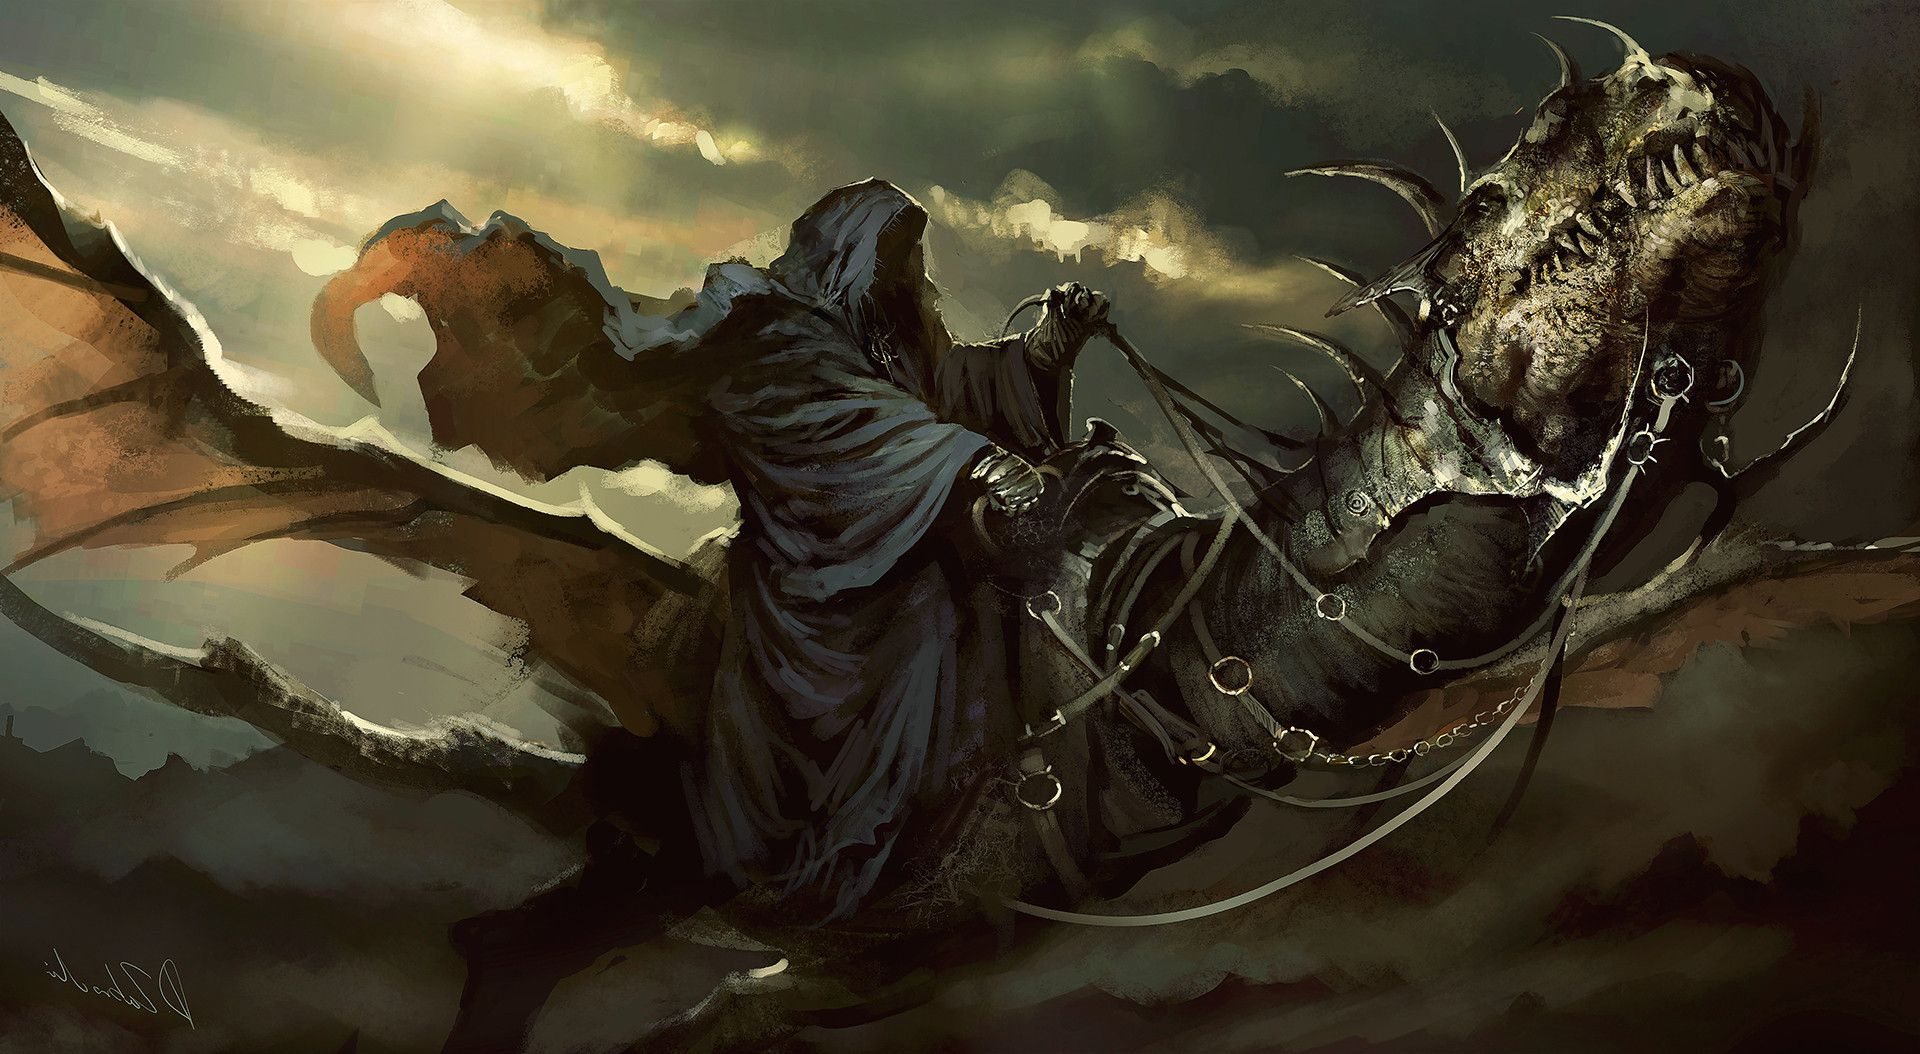 The Lord Of The Rings, Fantasy Art, Nazgûl, Witchking Of